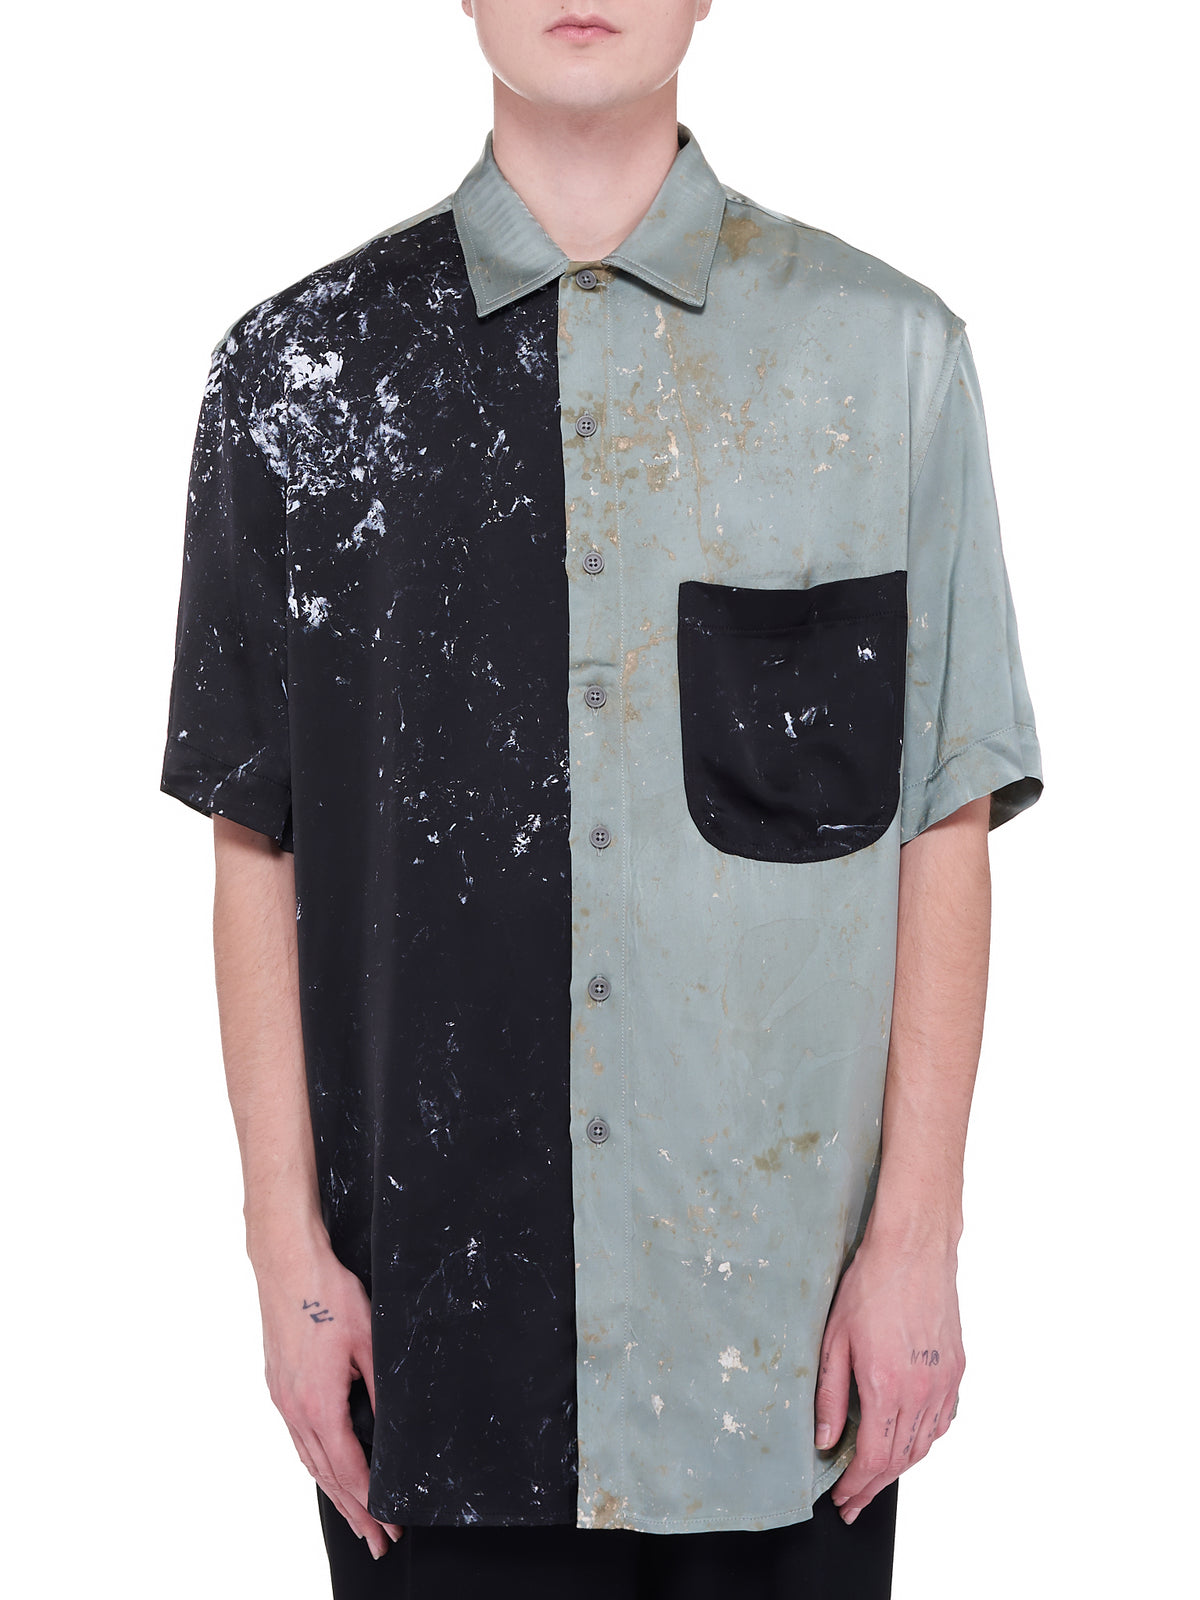 S/S Oversized Shirt (211-MSH059-TEAL-BLACK)